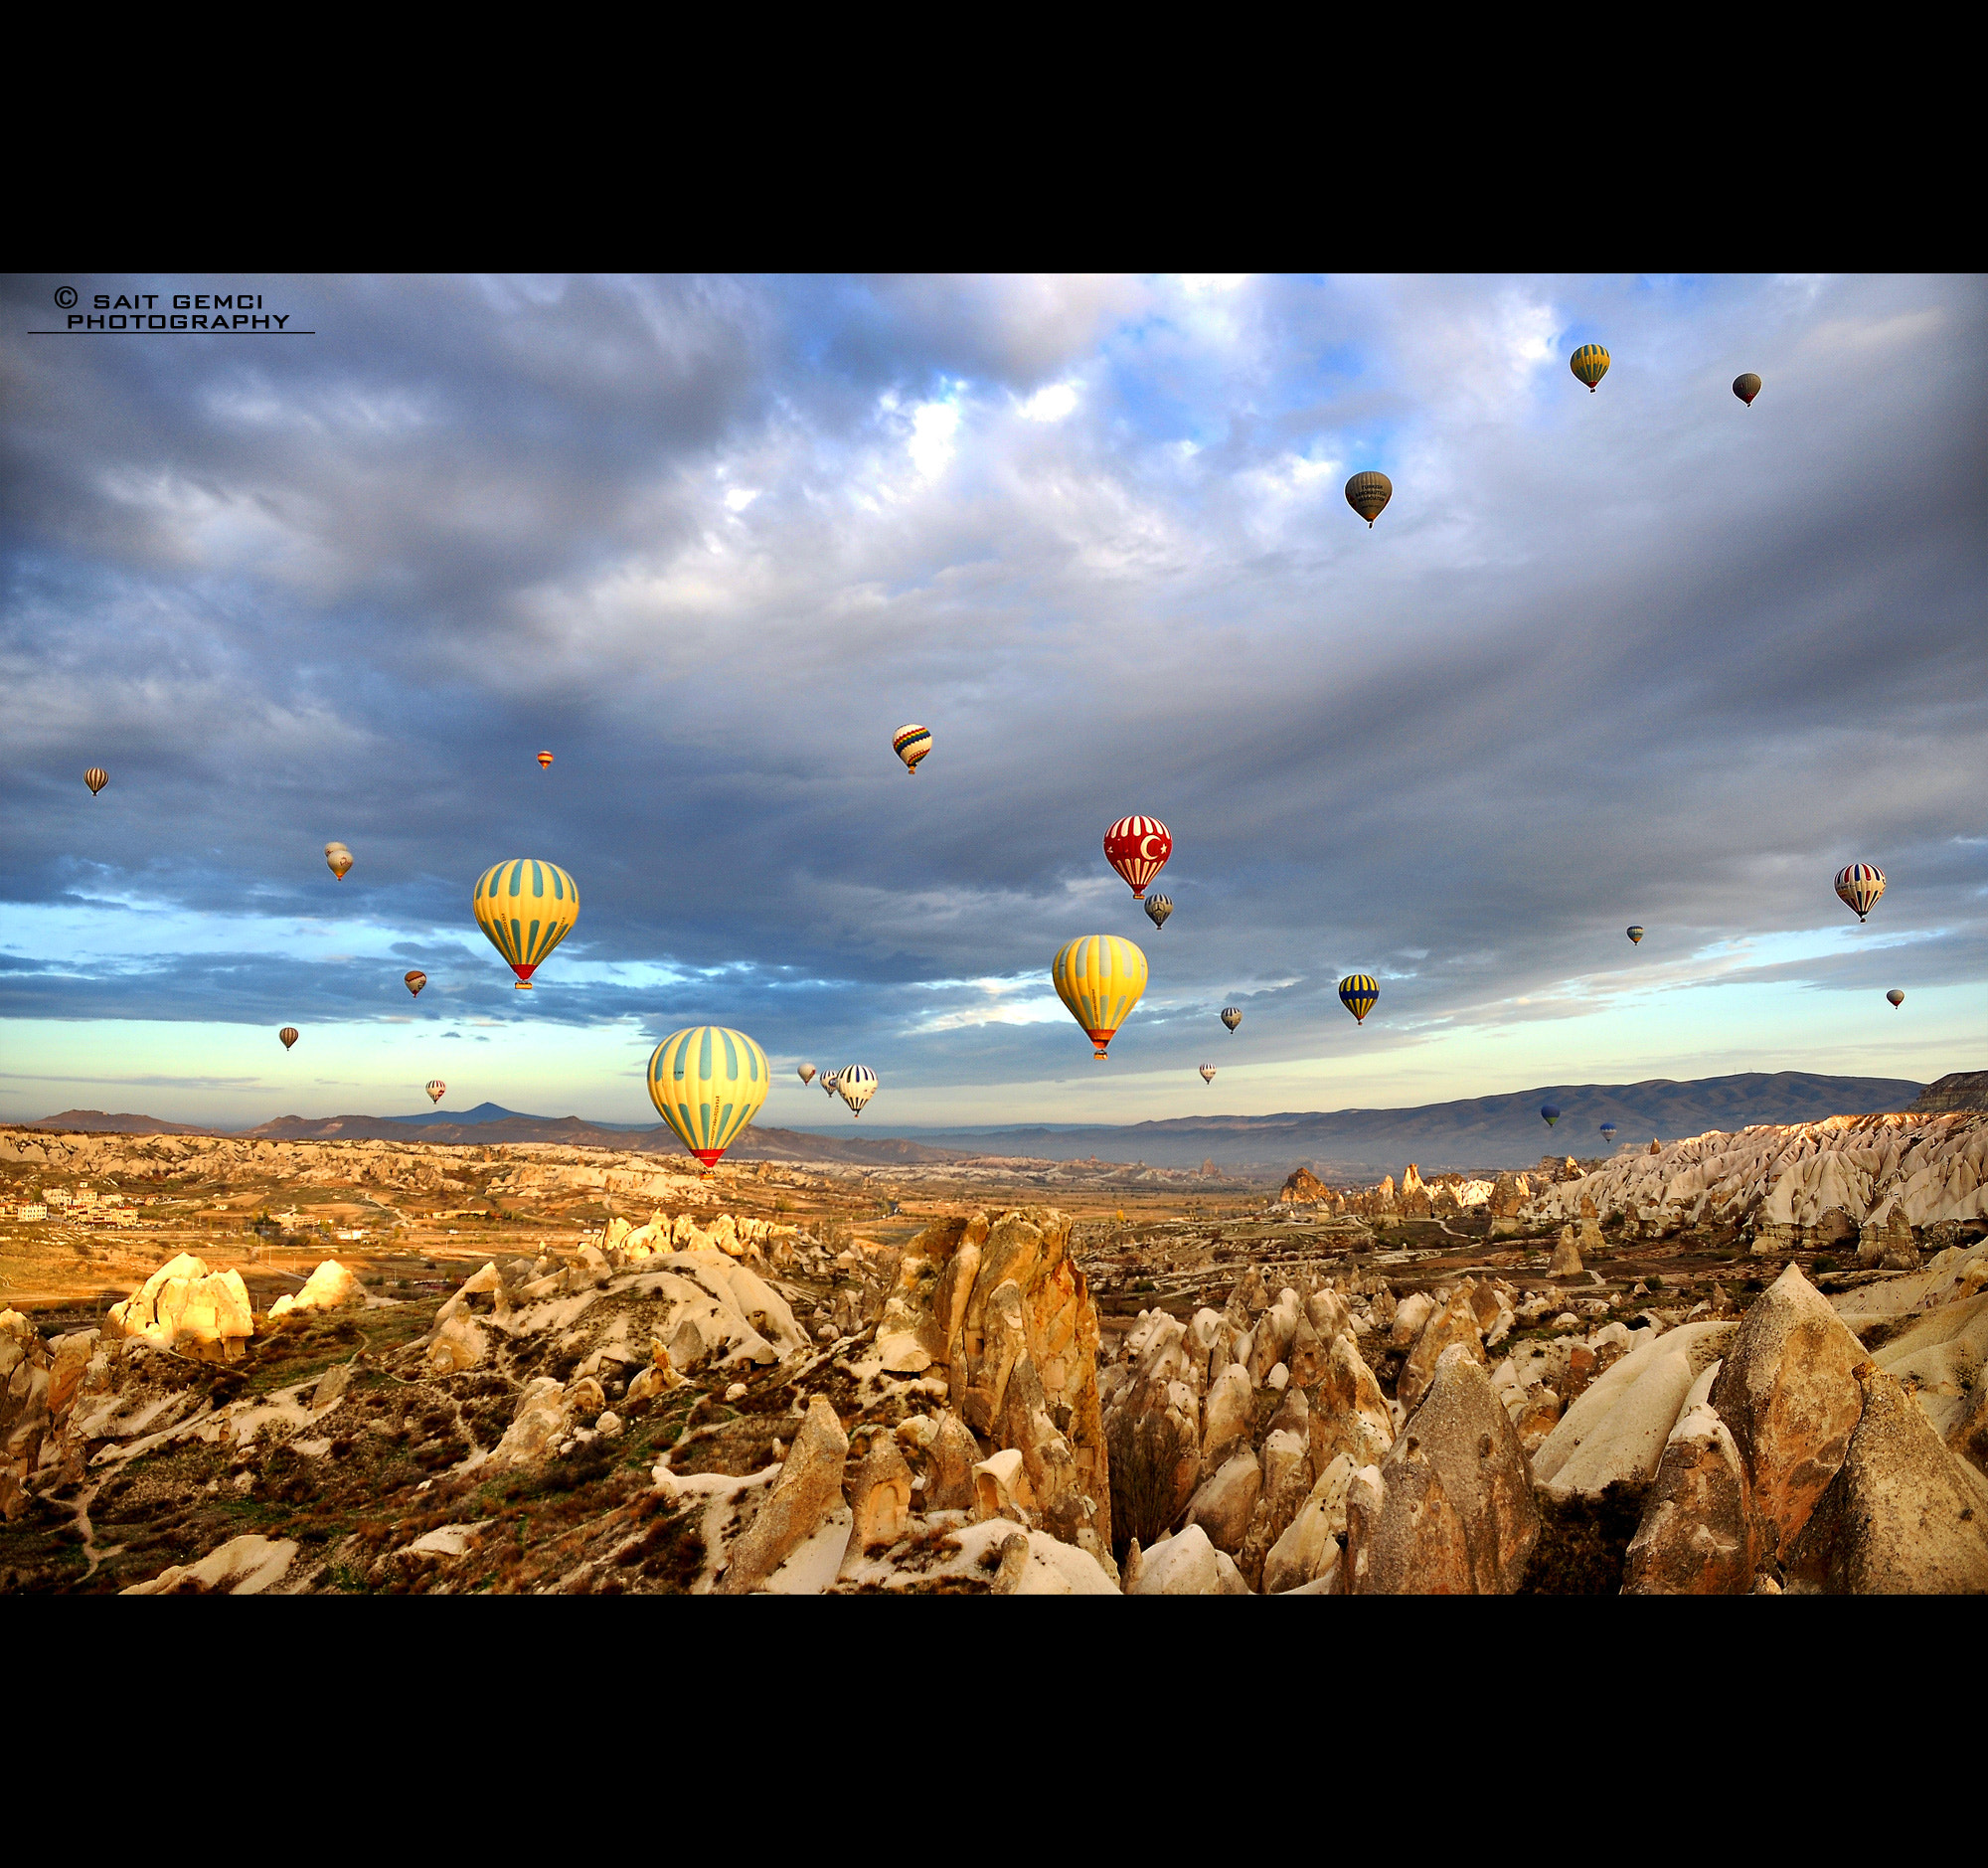 Photograph Balloons 05 by Sait Gemci on 500px